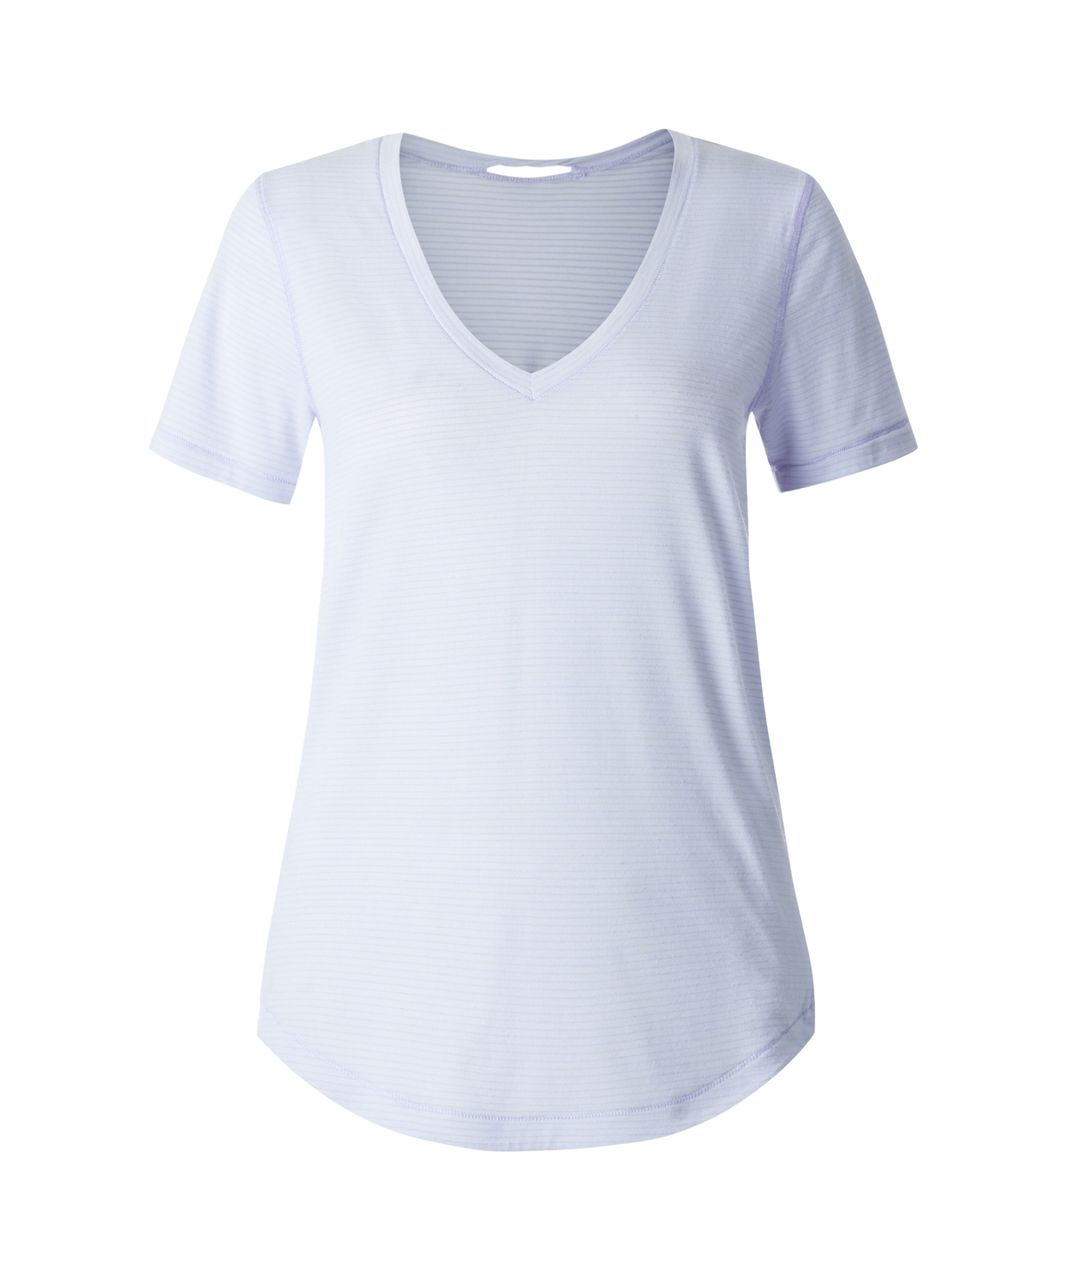 Lululemon What The Sport Tee - Heathered Chalk